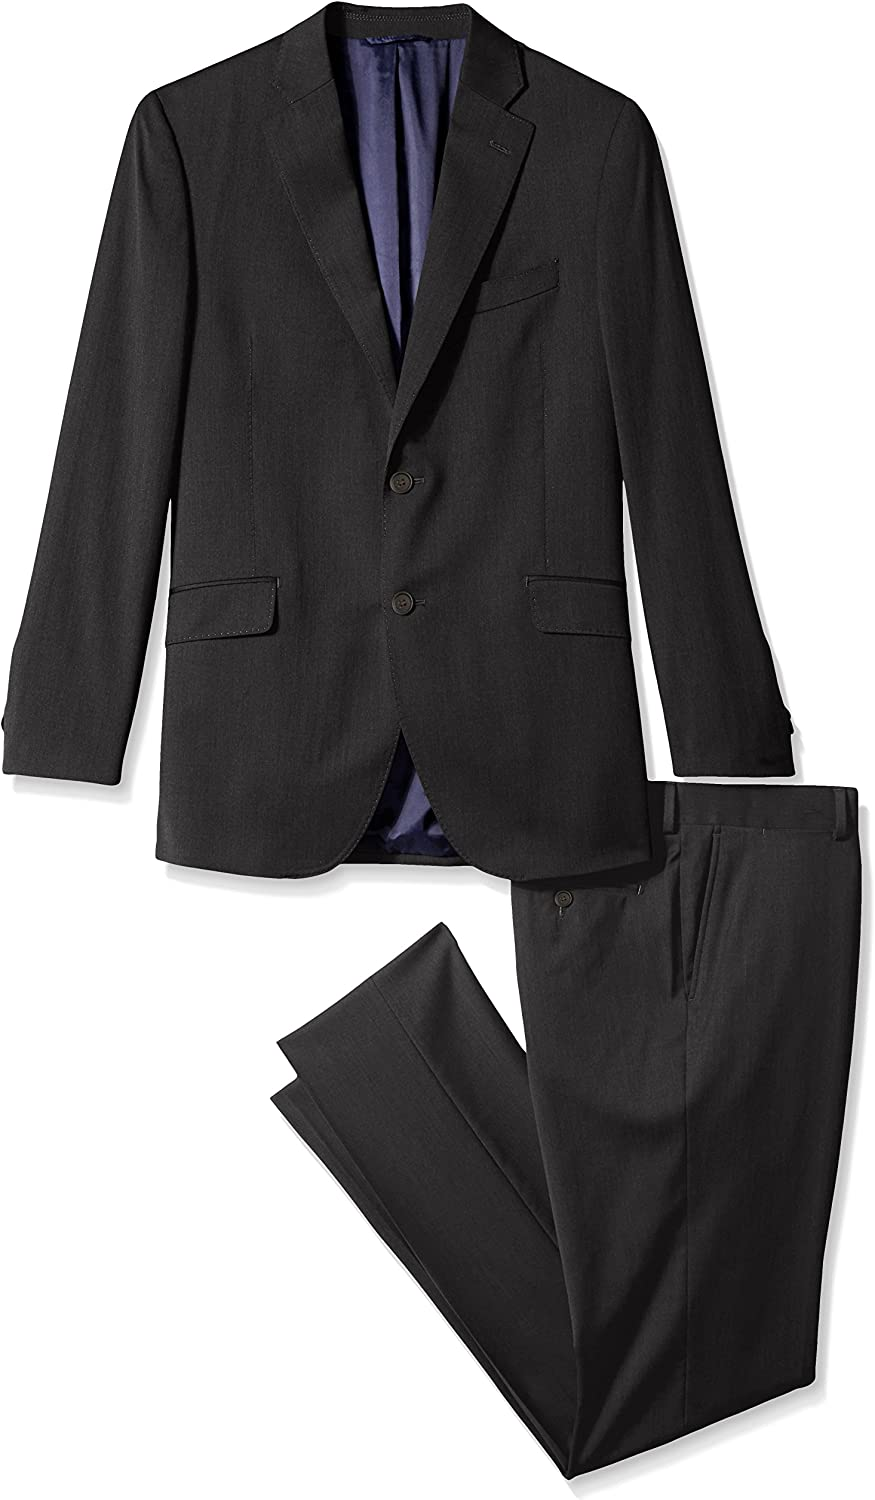 Kroon Men's Aim Active Inspired Movement Suit with Flex Lining